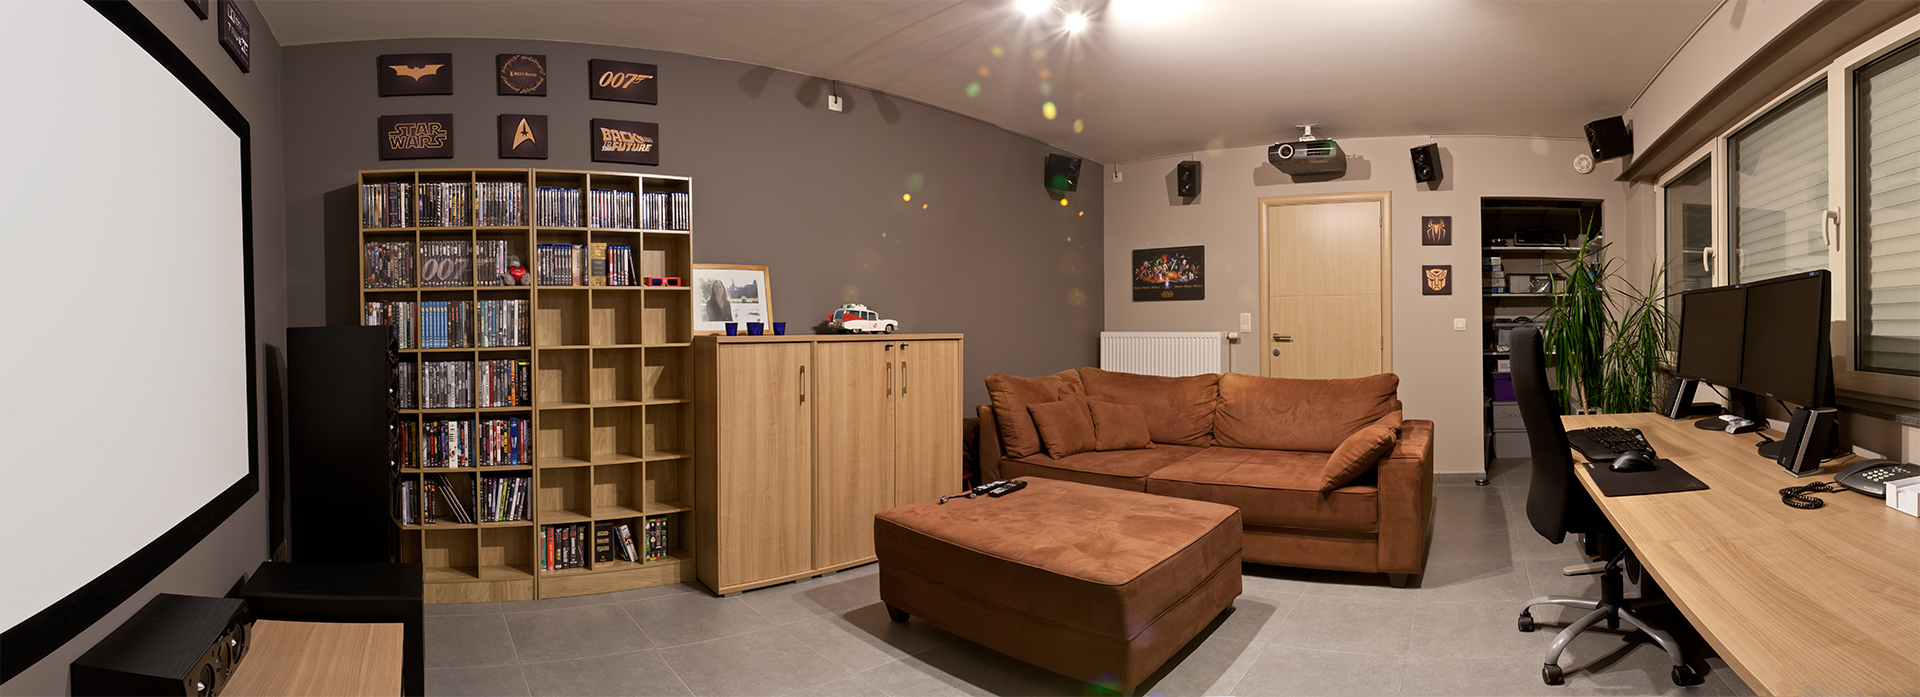 Panorama Tv Meubel.Freeco S Home Theater Gallery Home Theatre Still Needs Some